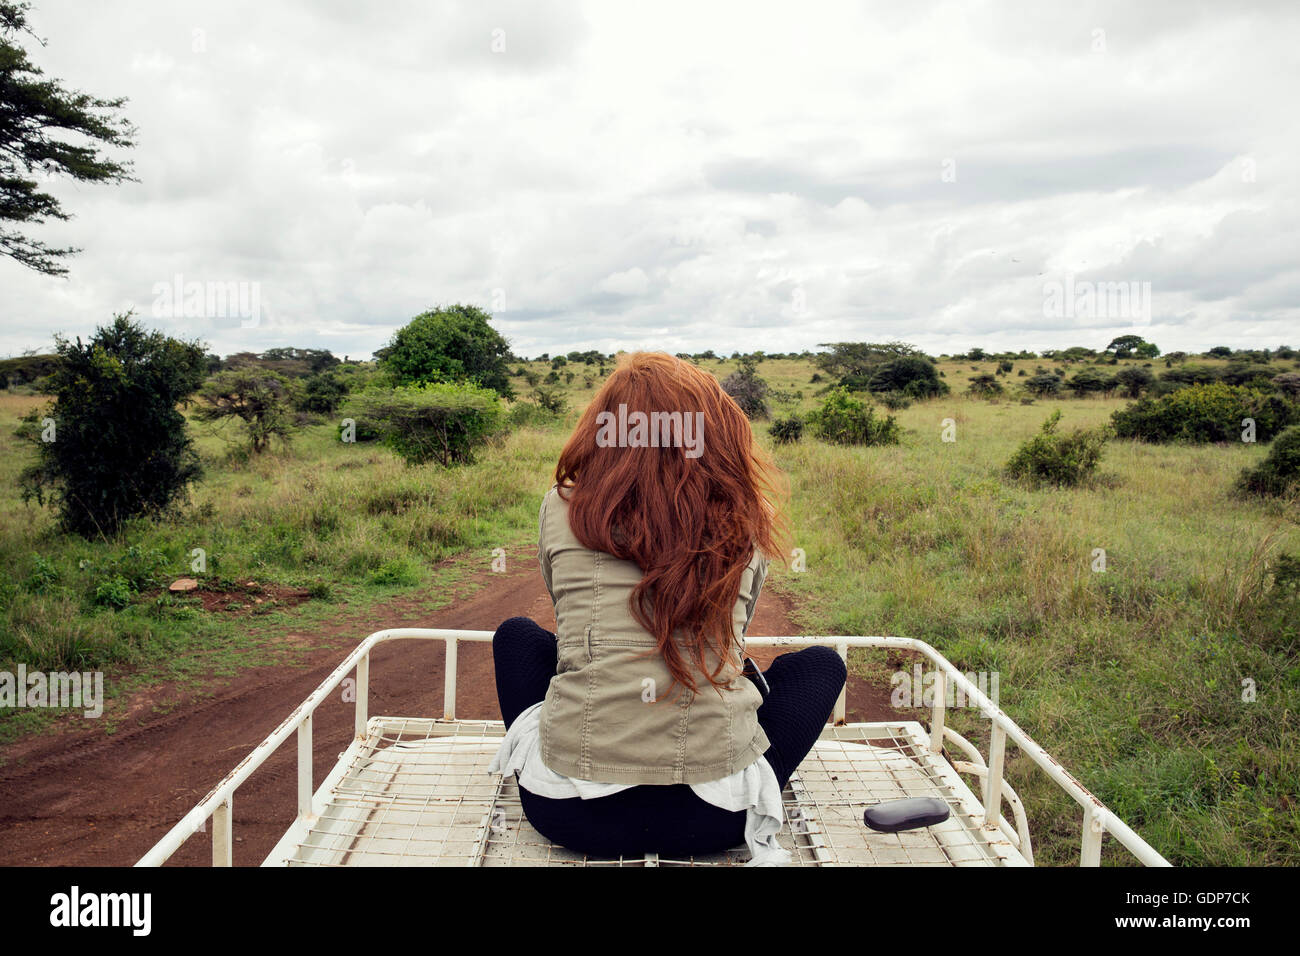 Woman enjoying ride on top of vehicle in wildlife park, Nairobi, Kenya - Stock Image